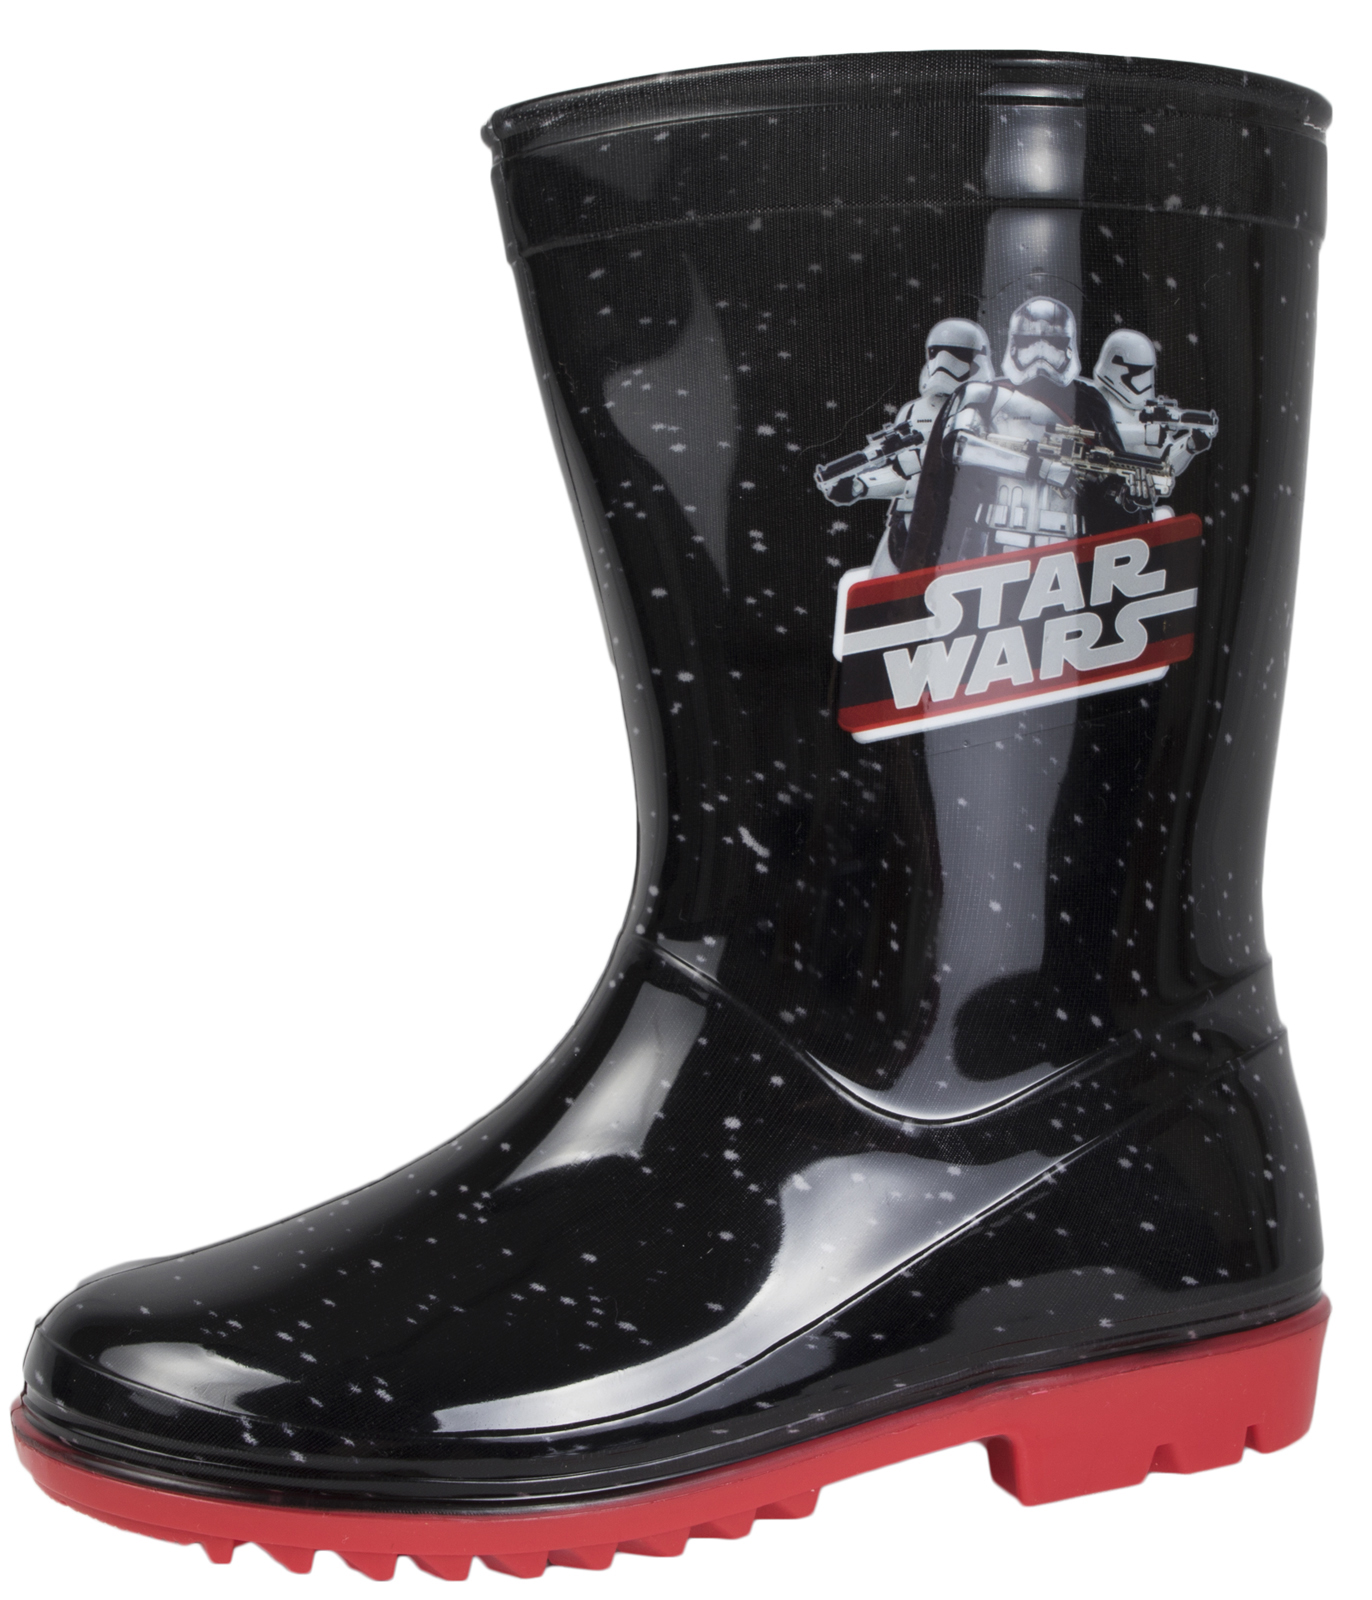 Disney Star Wars Wellington Boots Darth Vader Wellies Kids Boys Snow Rain Boots